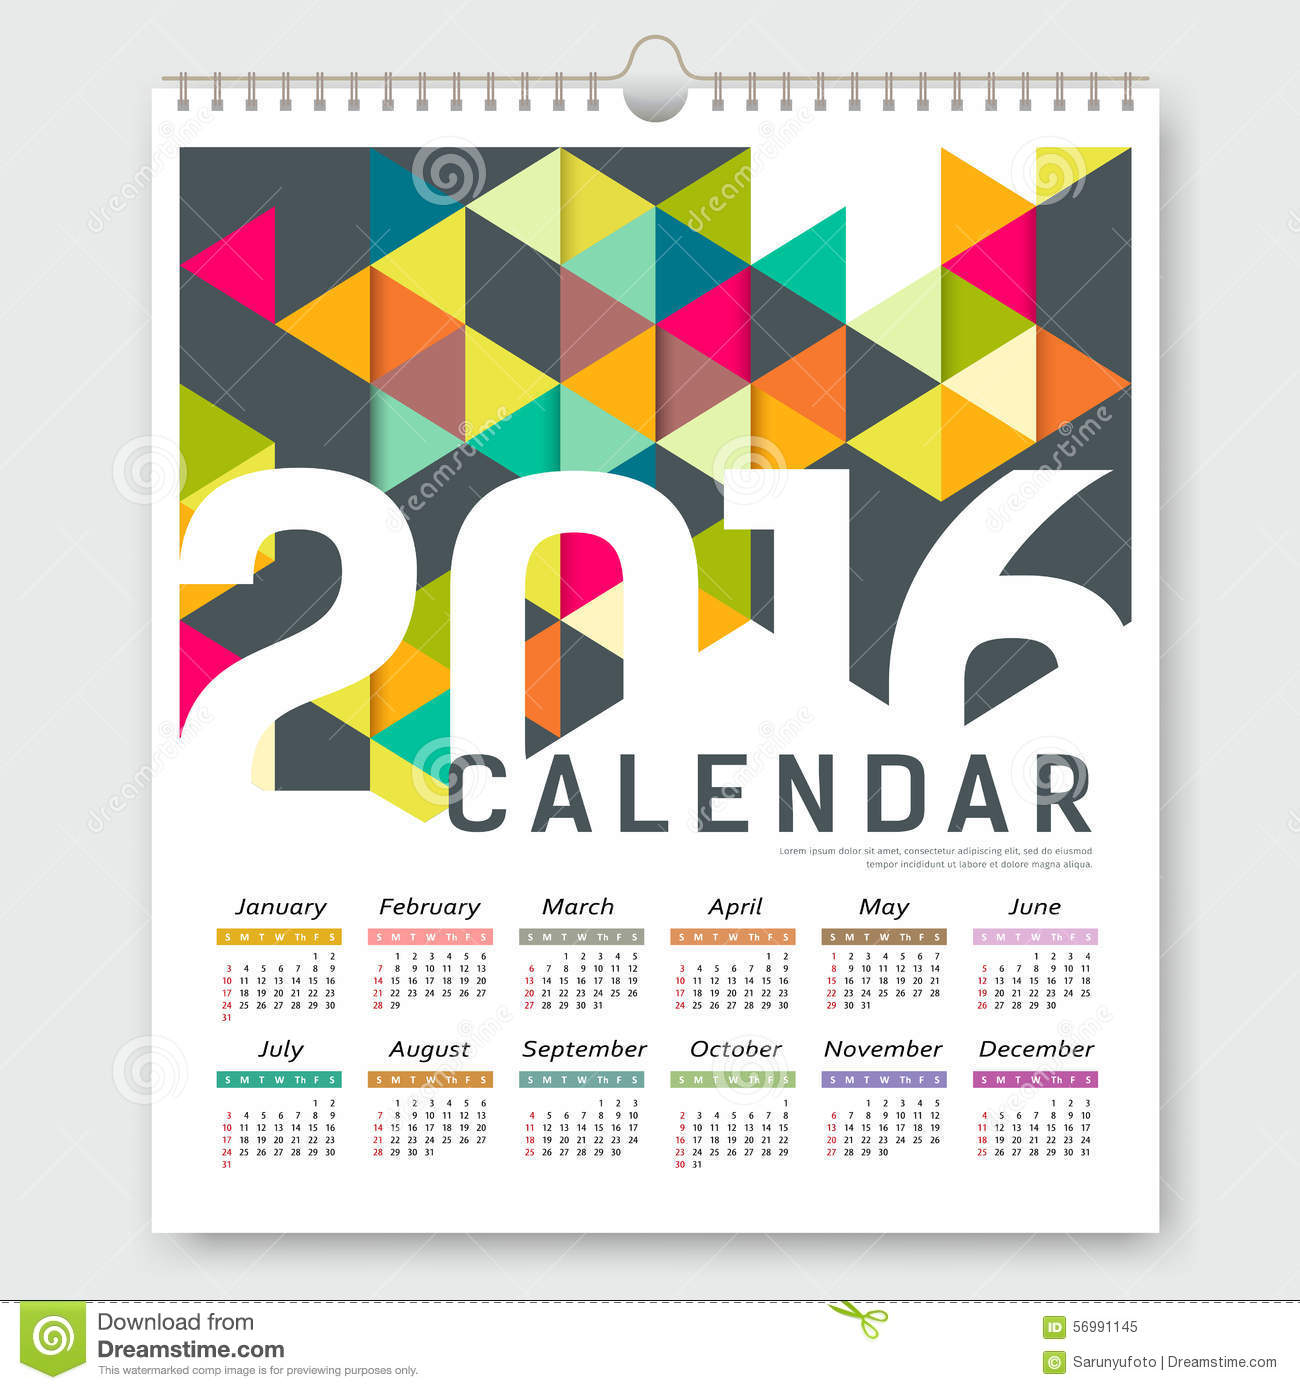 Calendar Design Ideas Vector : Calendar colorful triangle geometric design stock